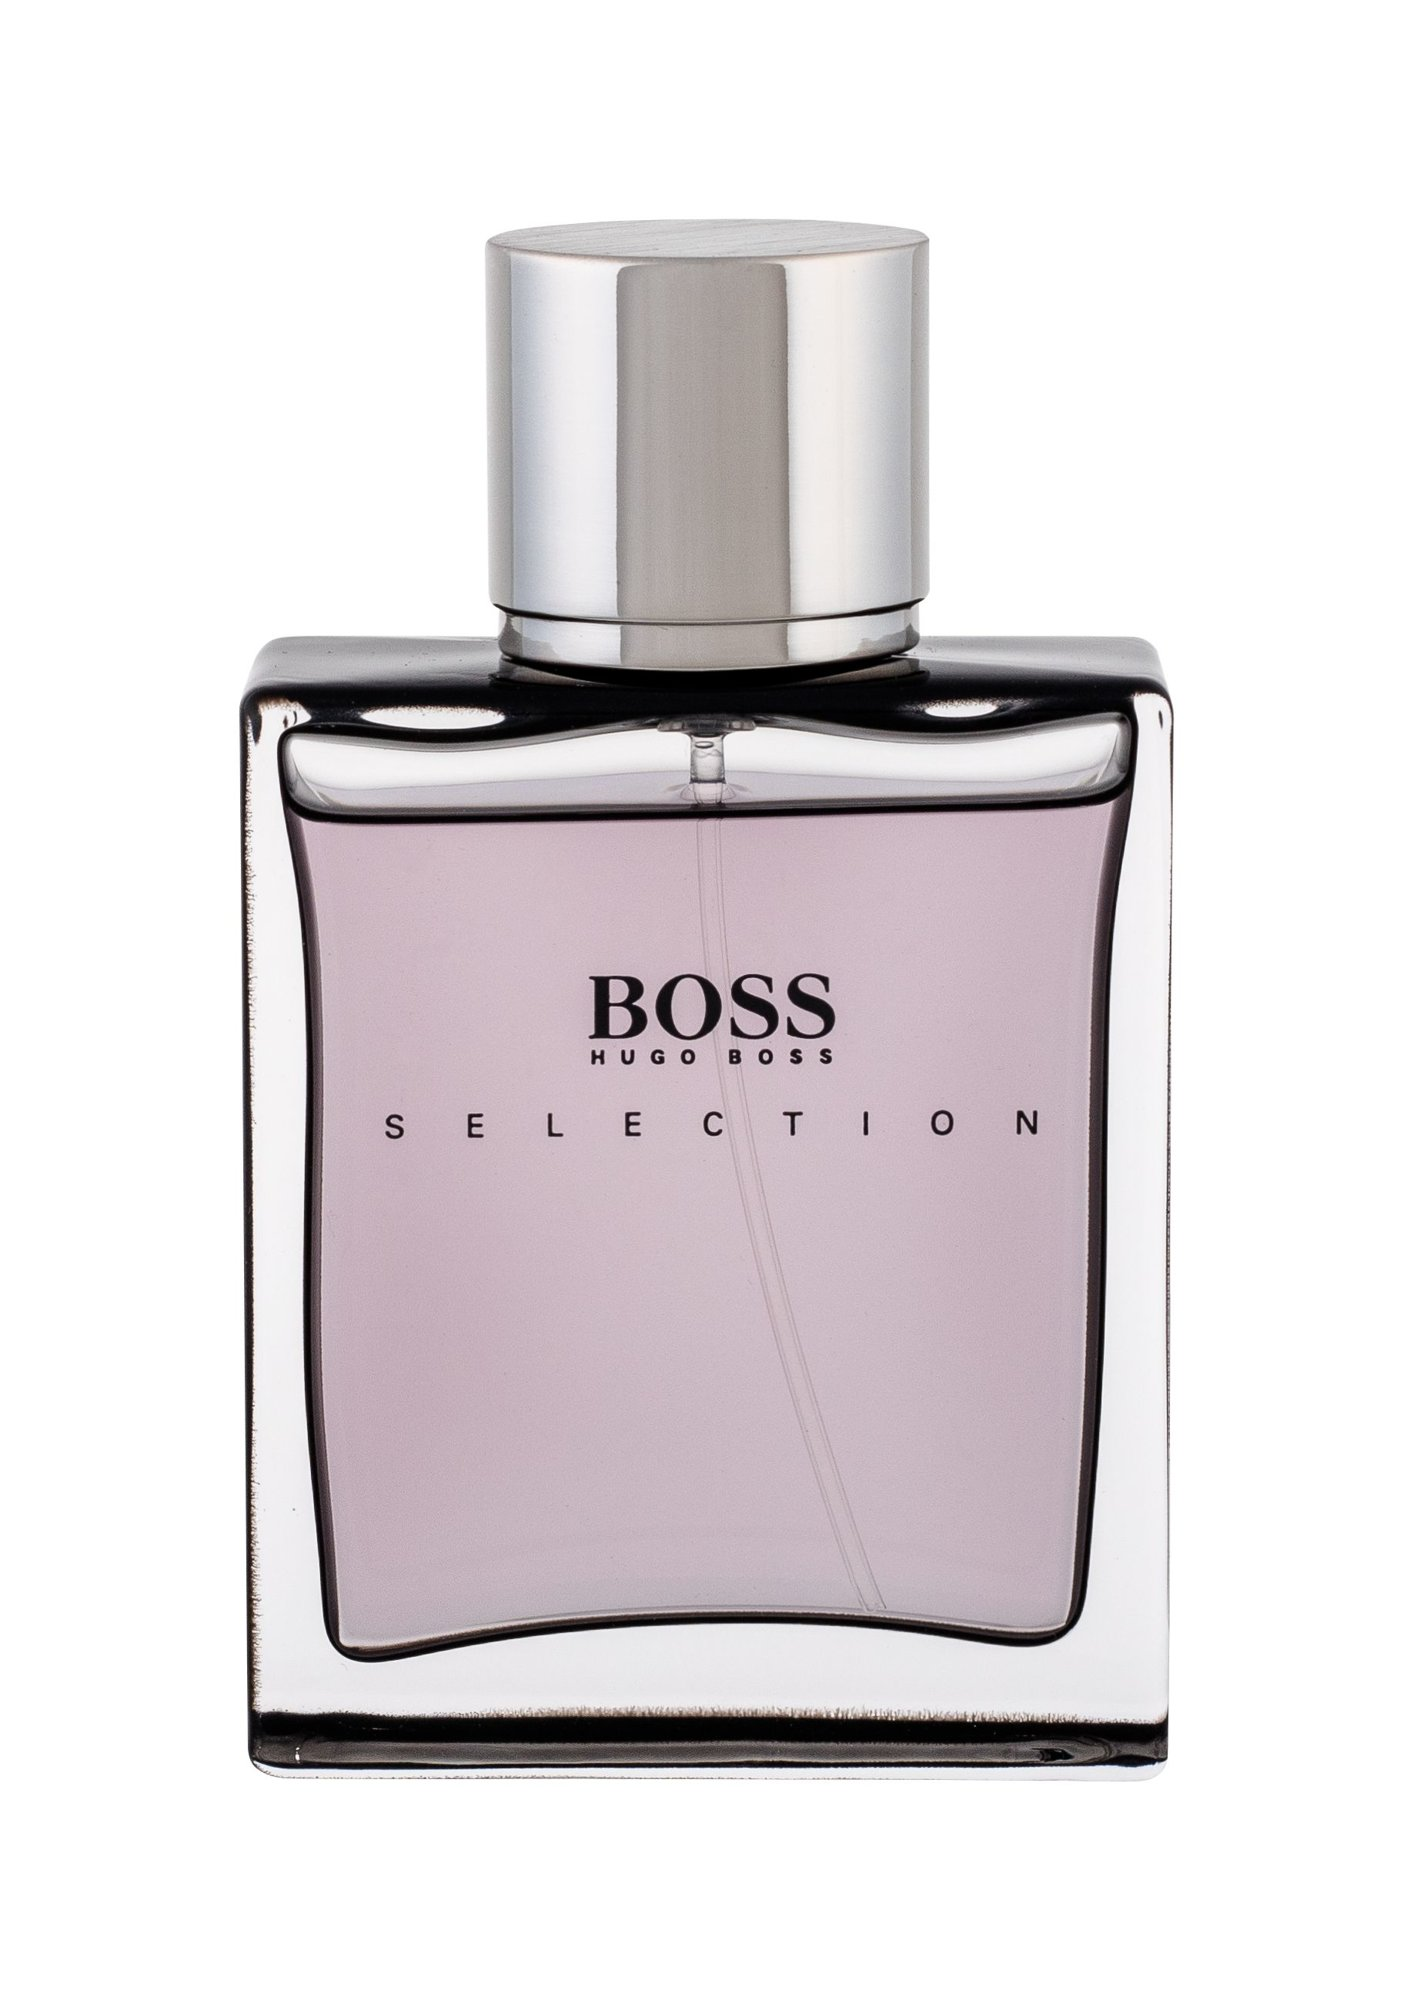 HUGO BOSS Selection EDT 50ml